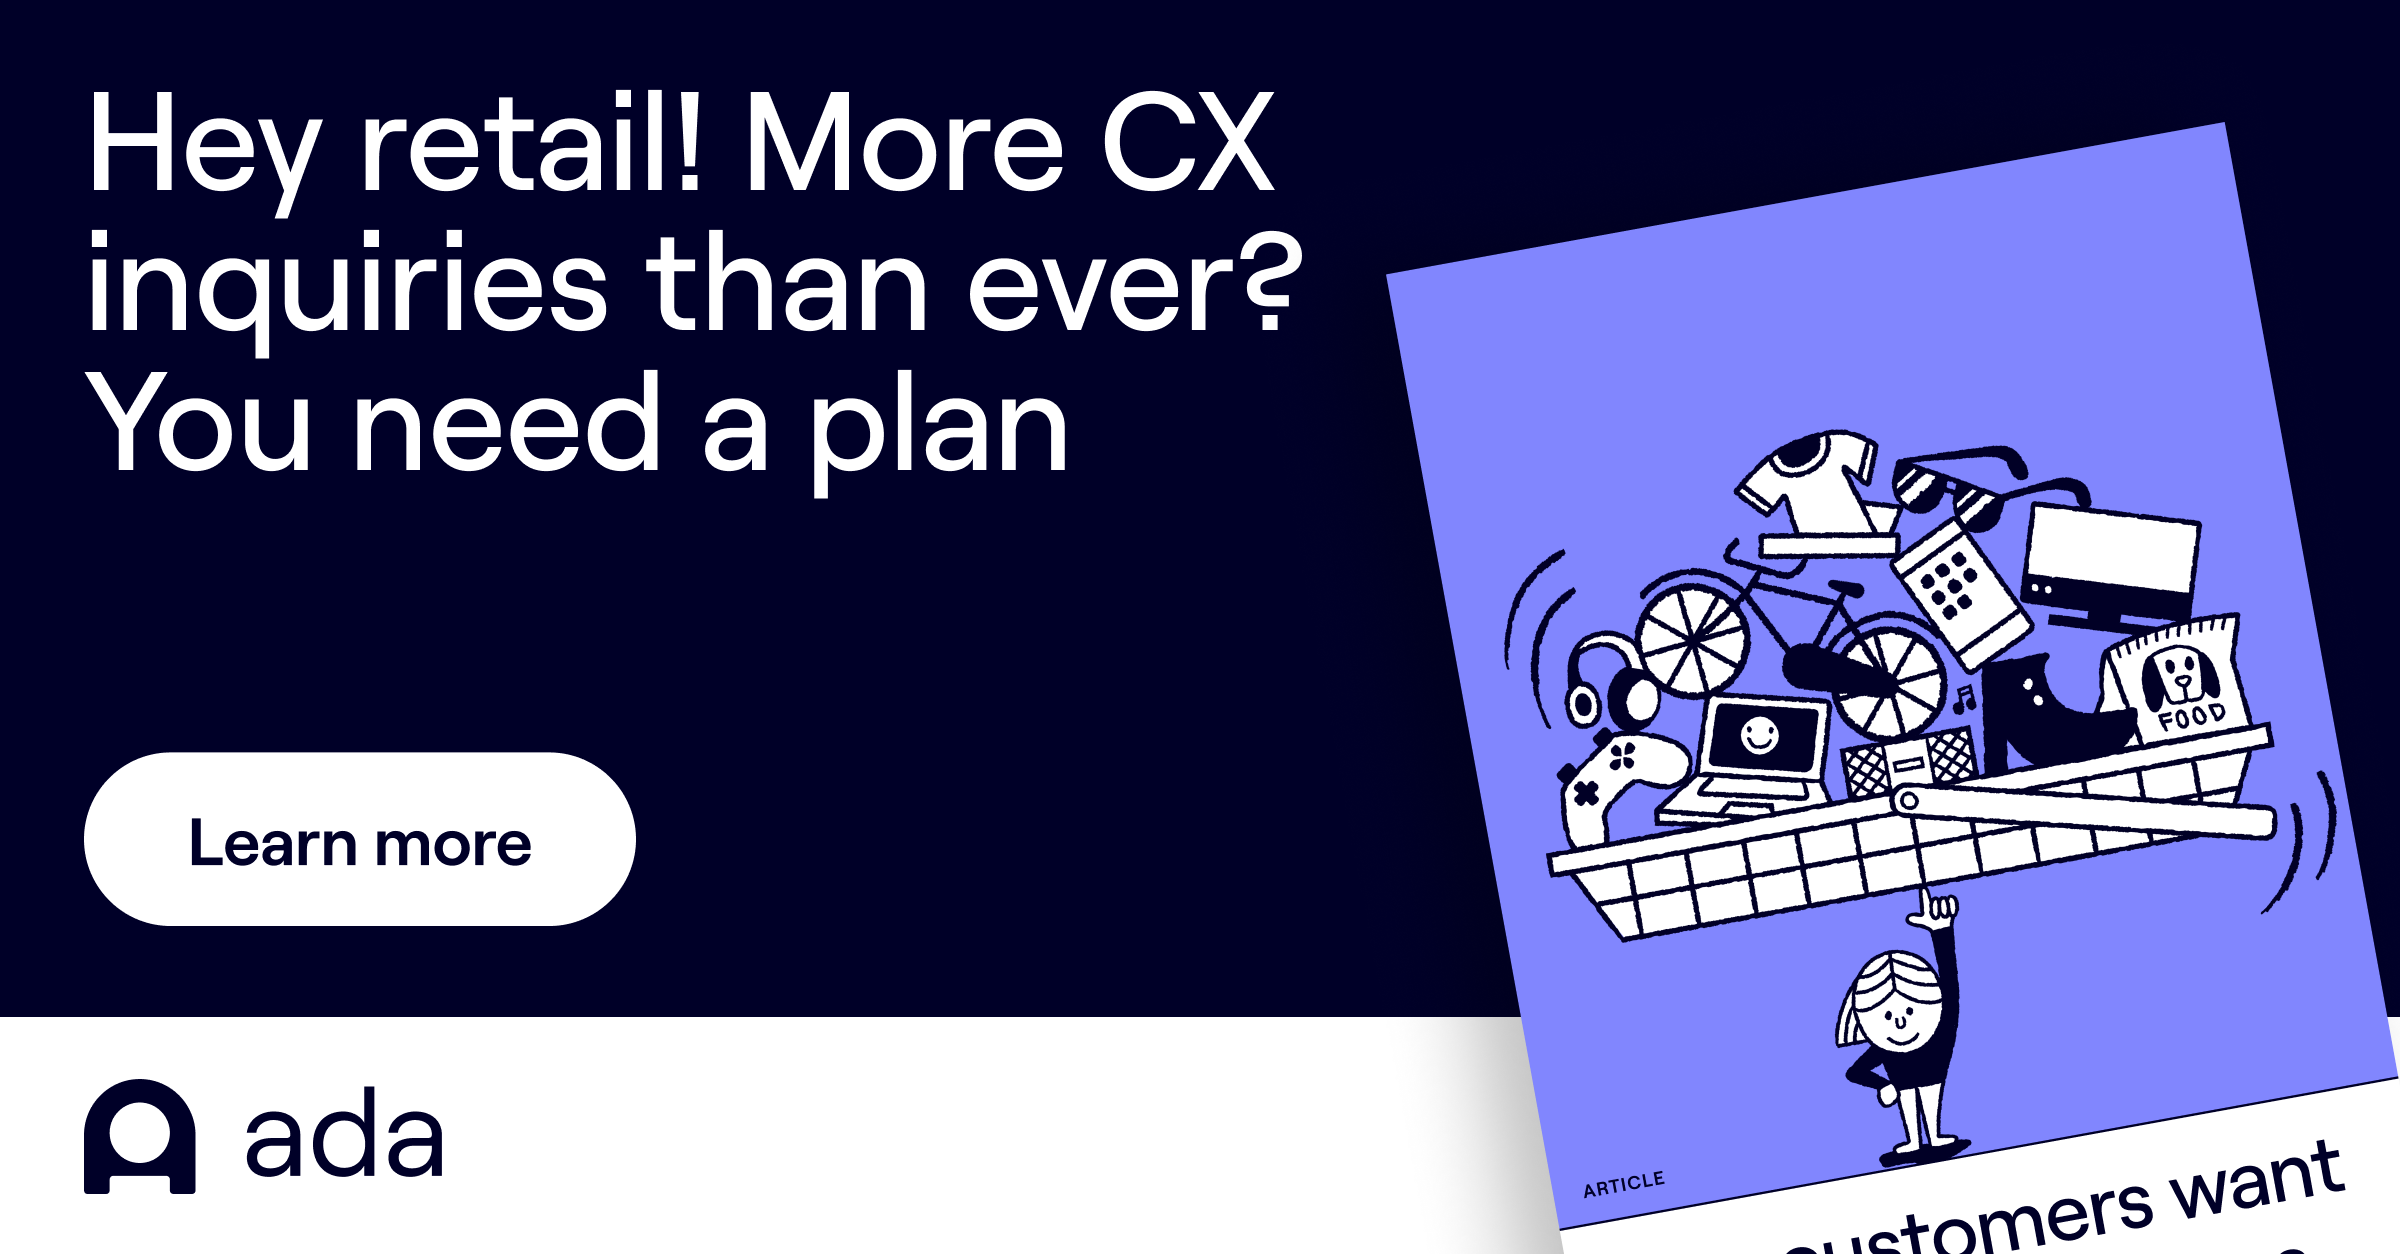 Hey Retail! More CX inquiries than ever? You need a plan